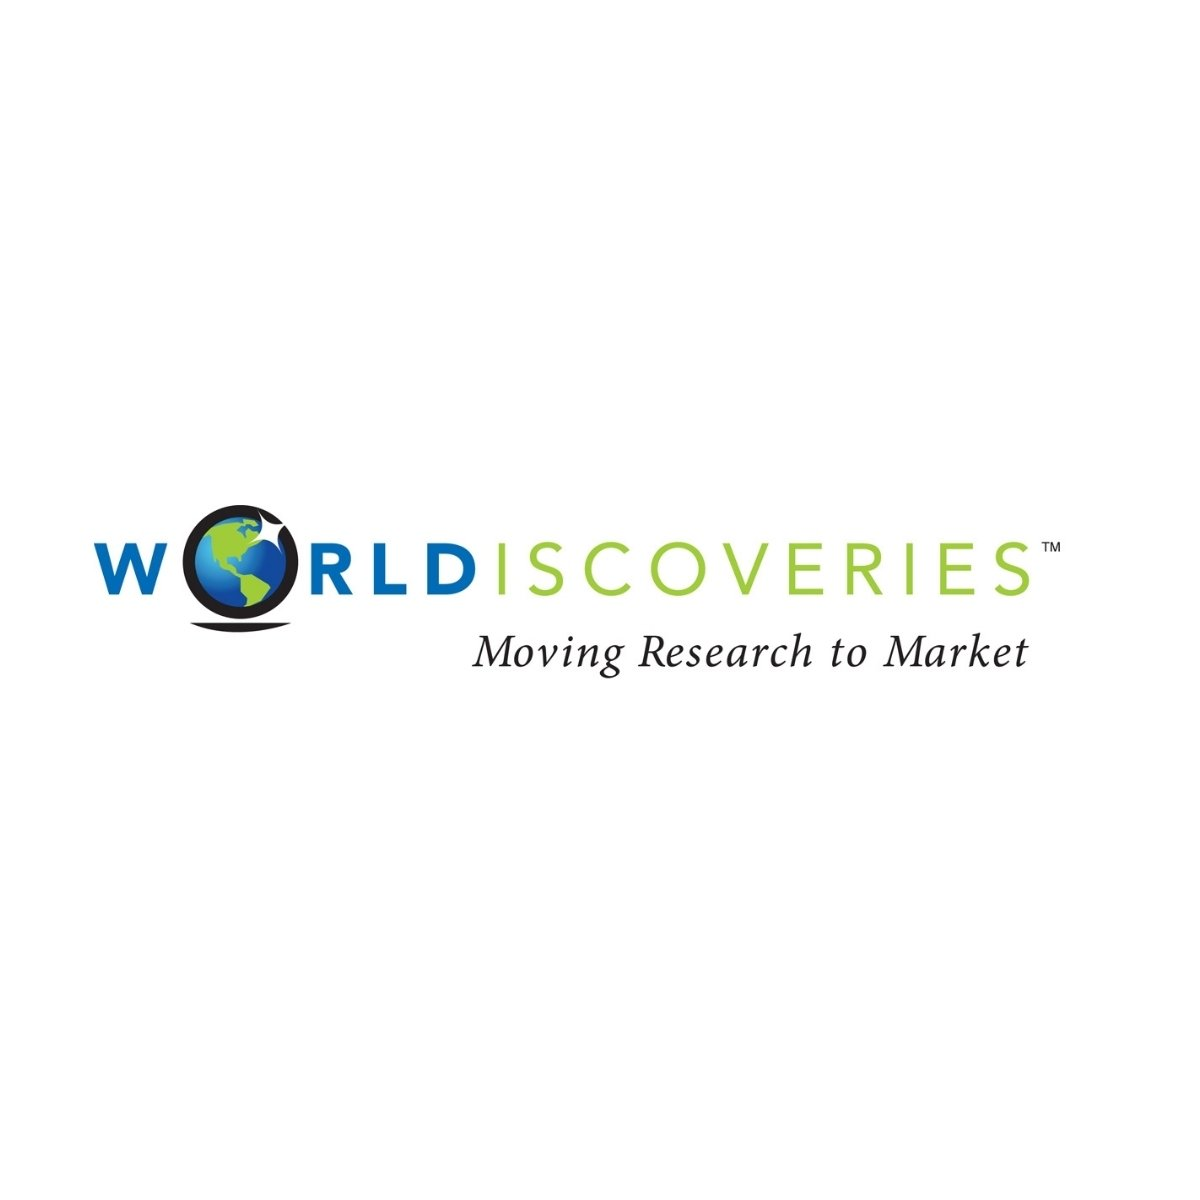 worldiscoveries logo